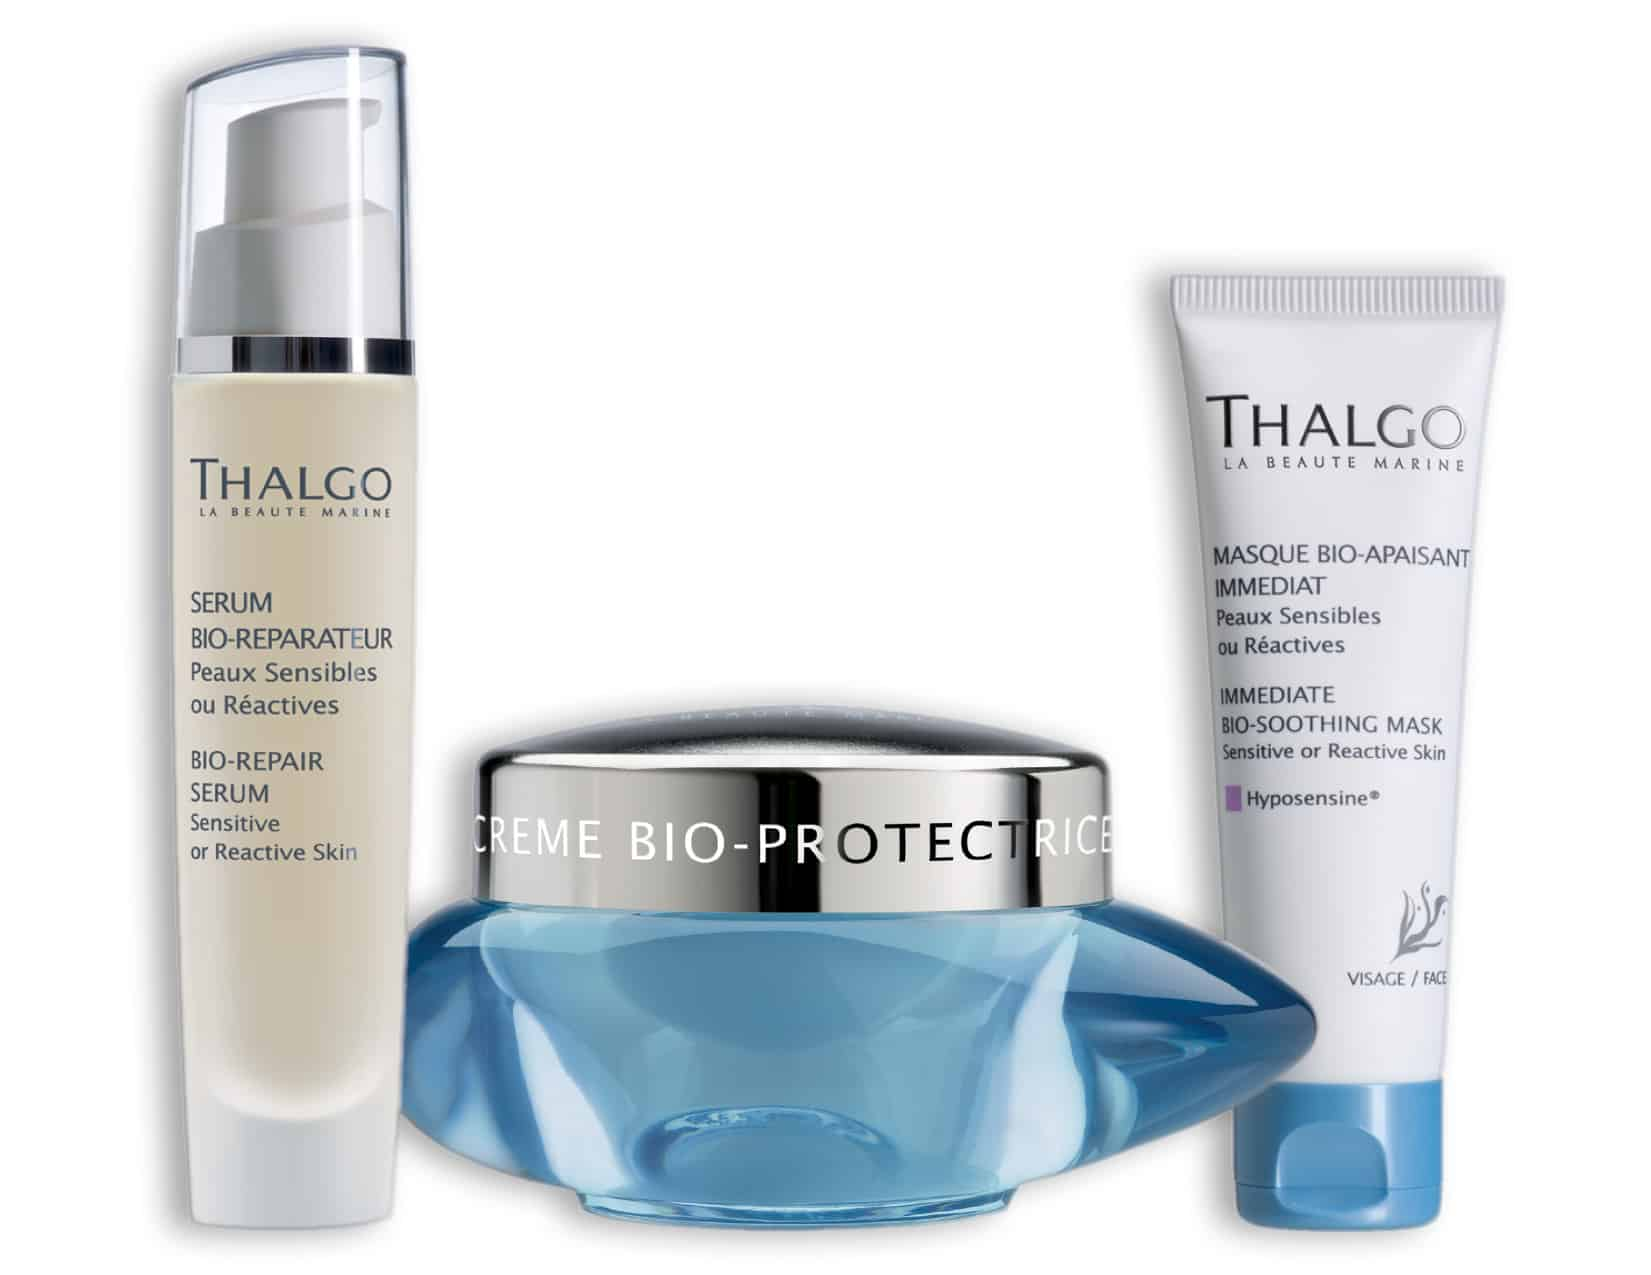 Thalgo Products | The Grand Beauty Spa